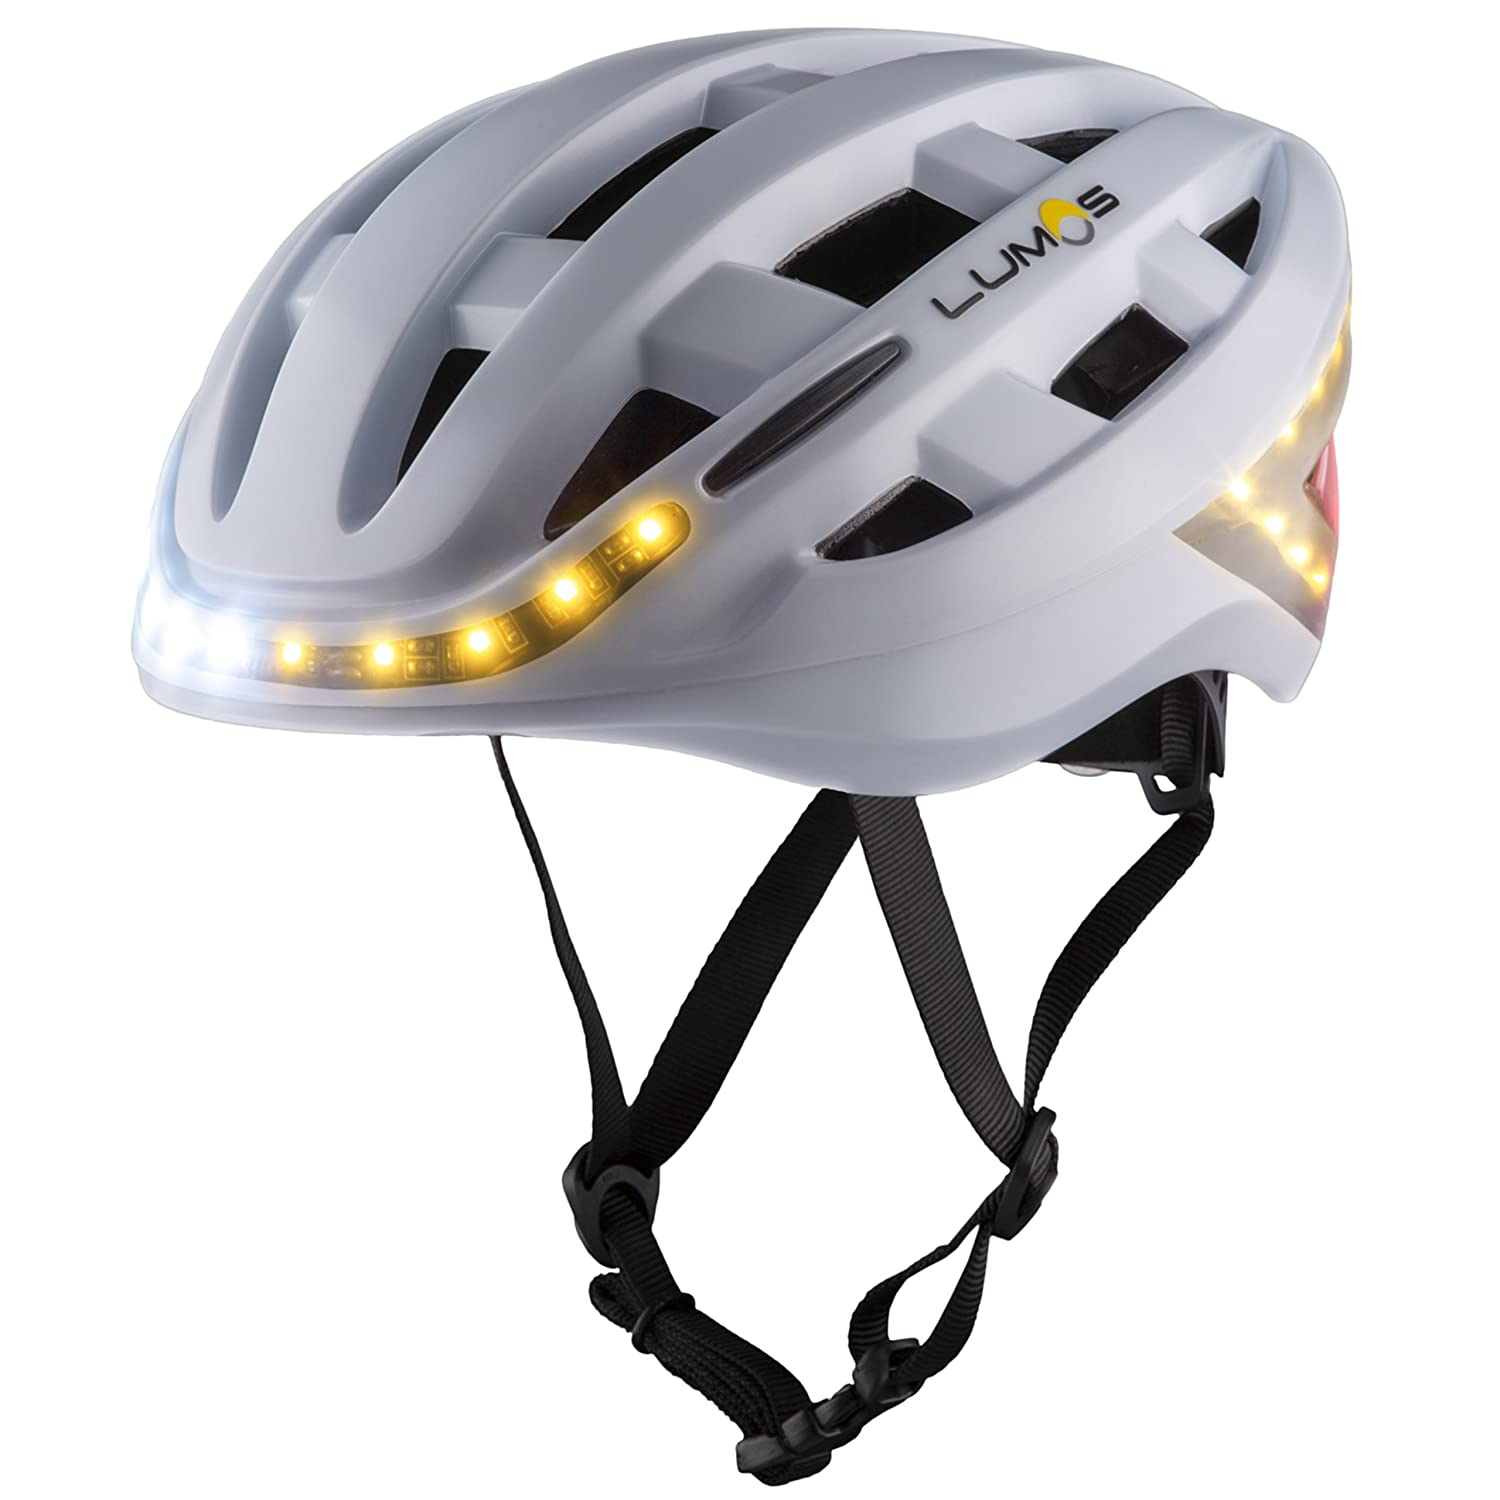 Lumos Smart Bike Helmet Wireless Turn Signal Handlebar Remote Built-in Motion Sensor – 70 LEDs on Front, Rear Sides – CPSC CE Certified Cycling Helmet Lumen Labs Inc. LKHEBKB